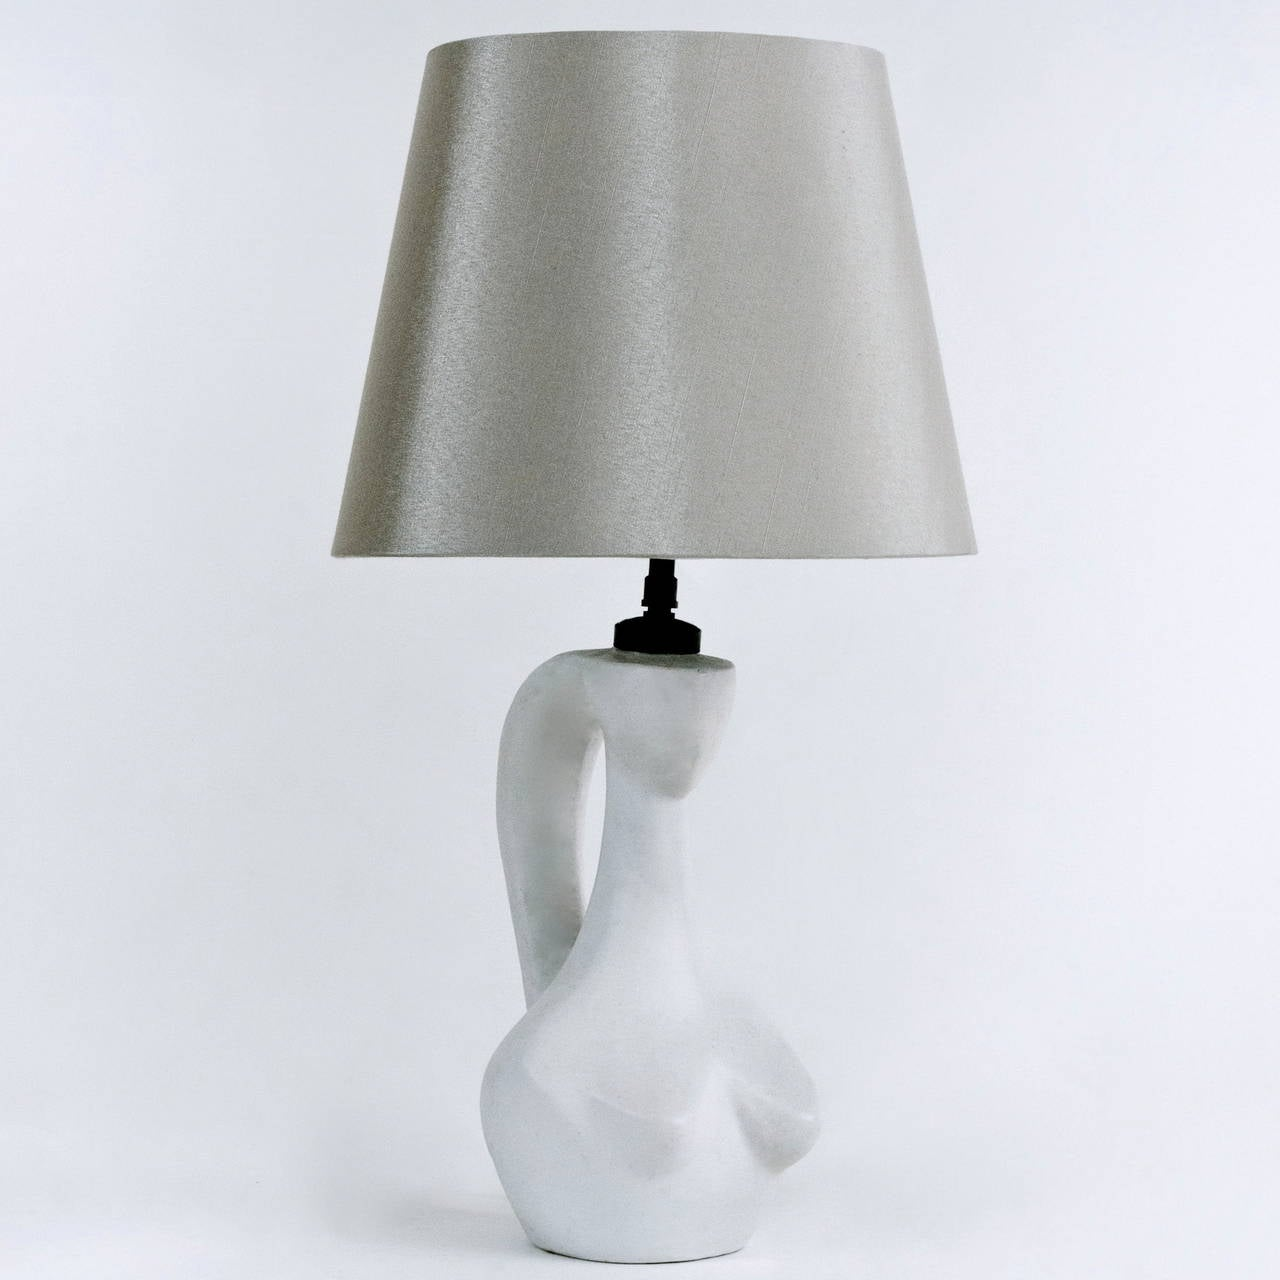 white ceramic table lamp base by jacques blin at 1stdibs. Black Bedroom Furniture Sets. Home Design Ideas